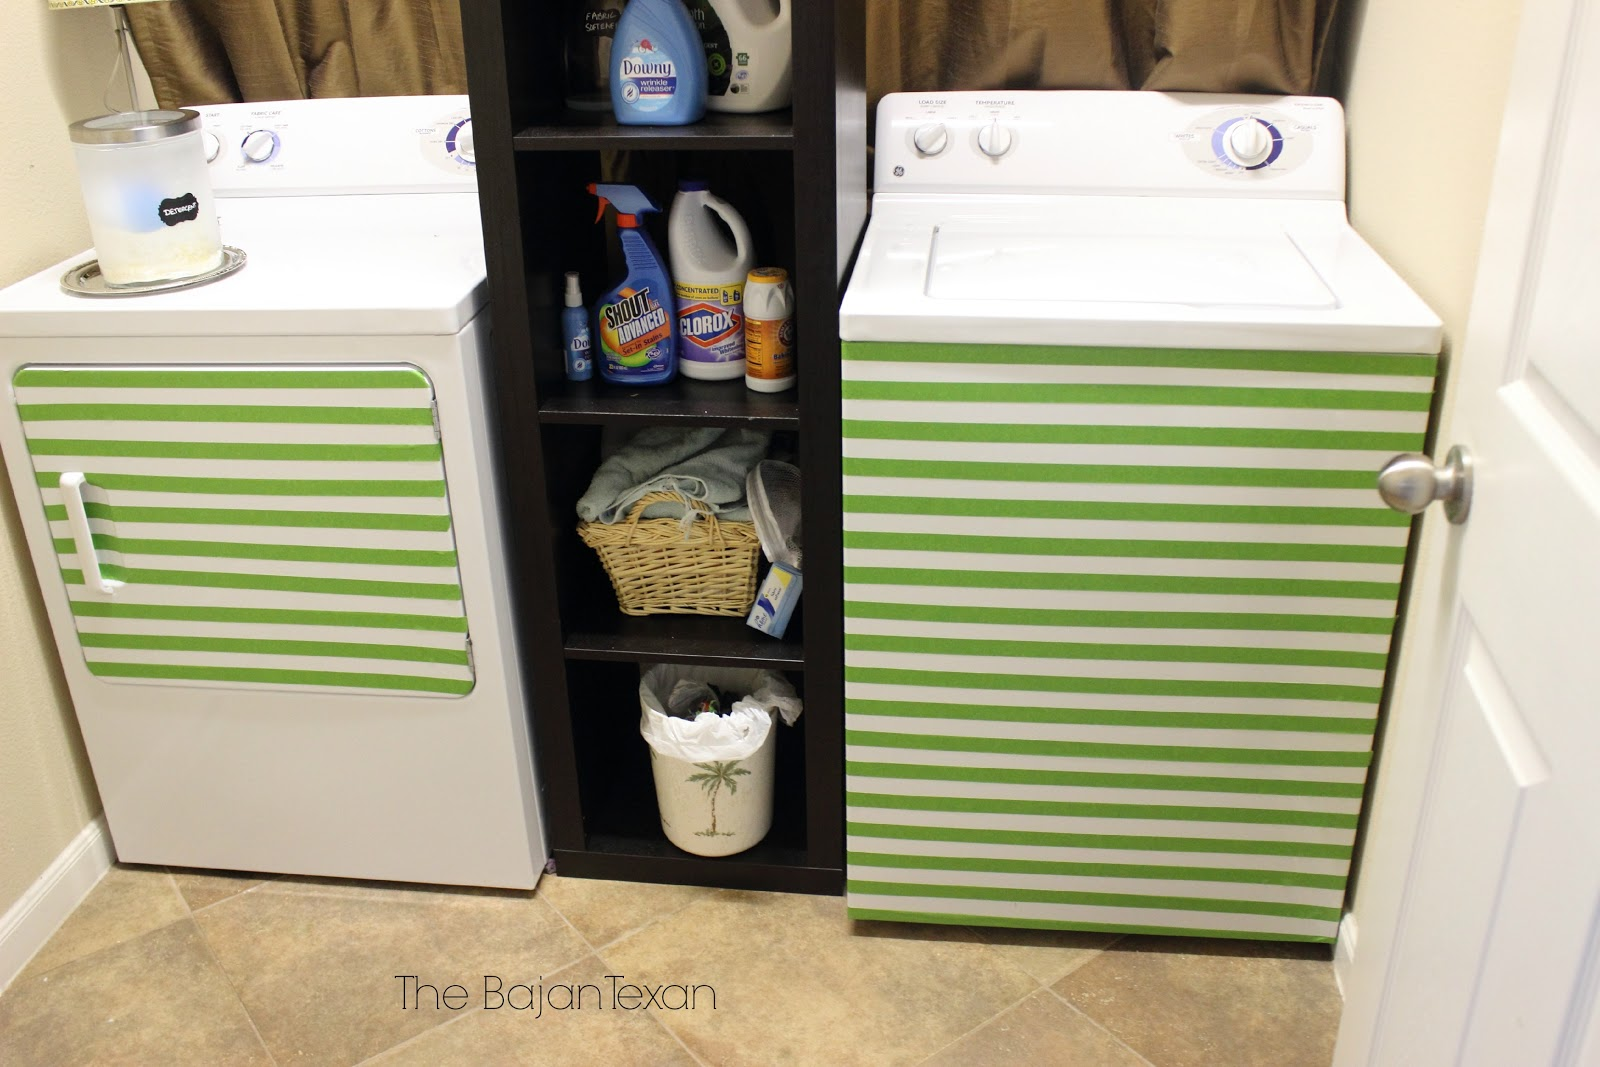 Top Loading Washer 14833 Laundry Room Ideas Small Spaces A Stroll Thru Life 230th Inspire Me